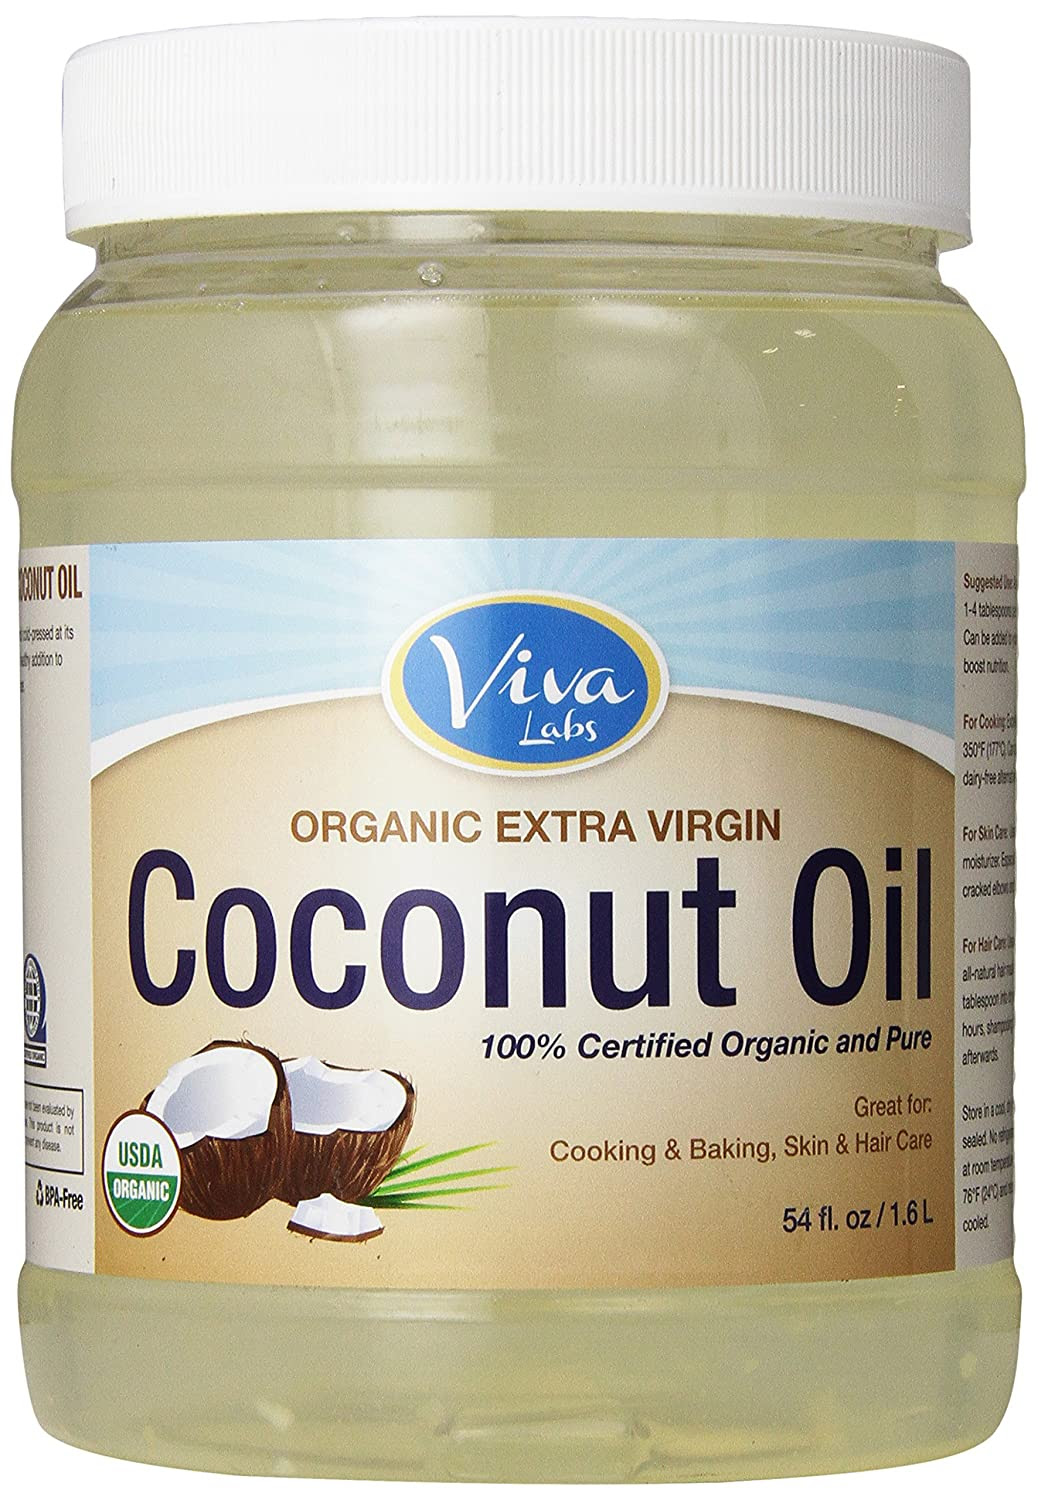 THE BEST MOISTURIZER EVER: COCONUT OIL